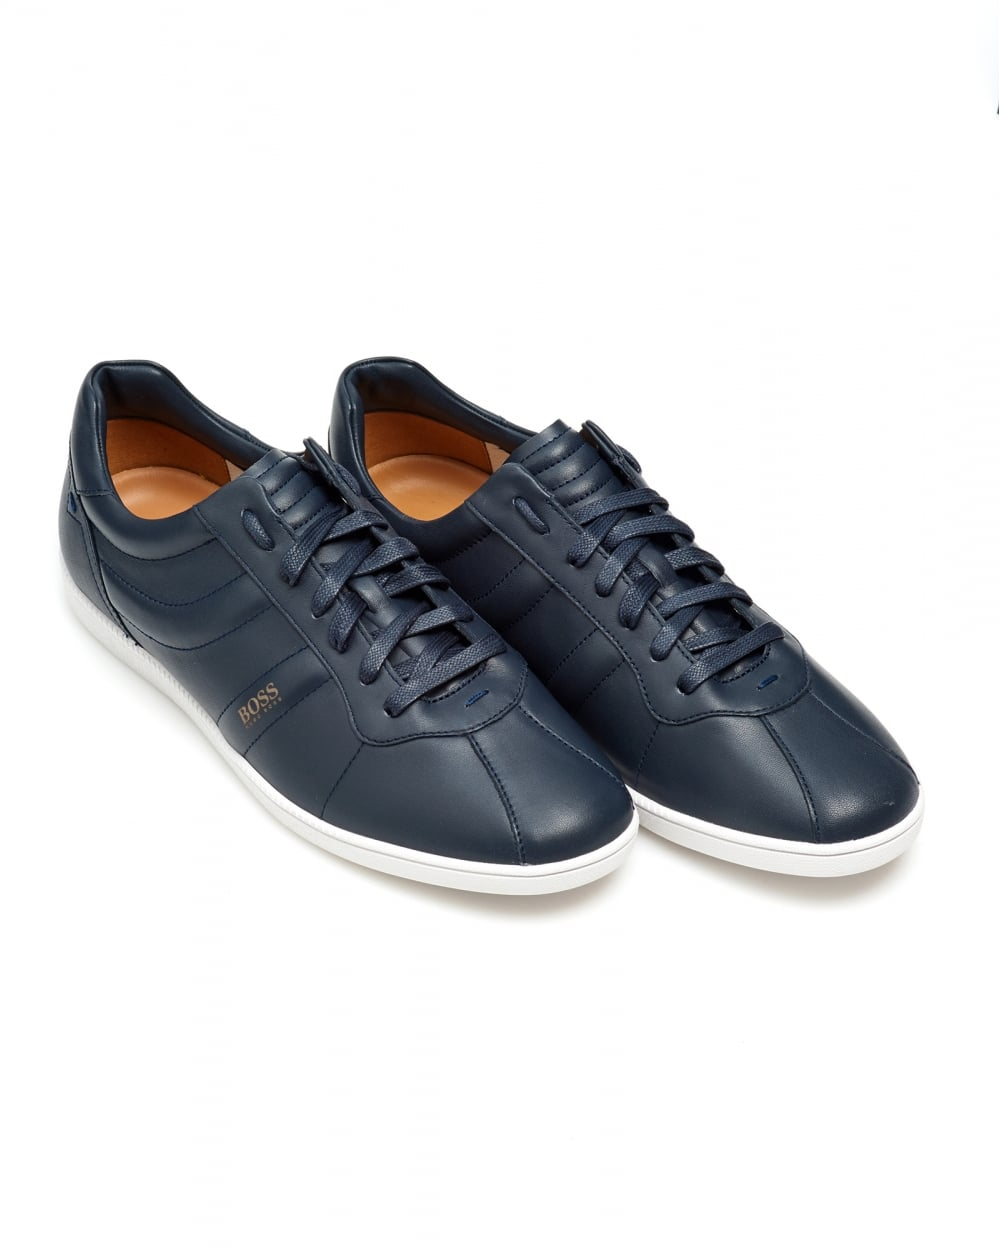 89473f5711daee Hugo Boss Orange Mens Rumba Ten Trainers, Dark Blue Leather Sneakers